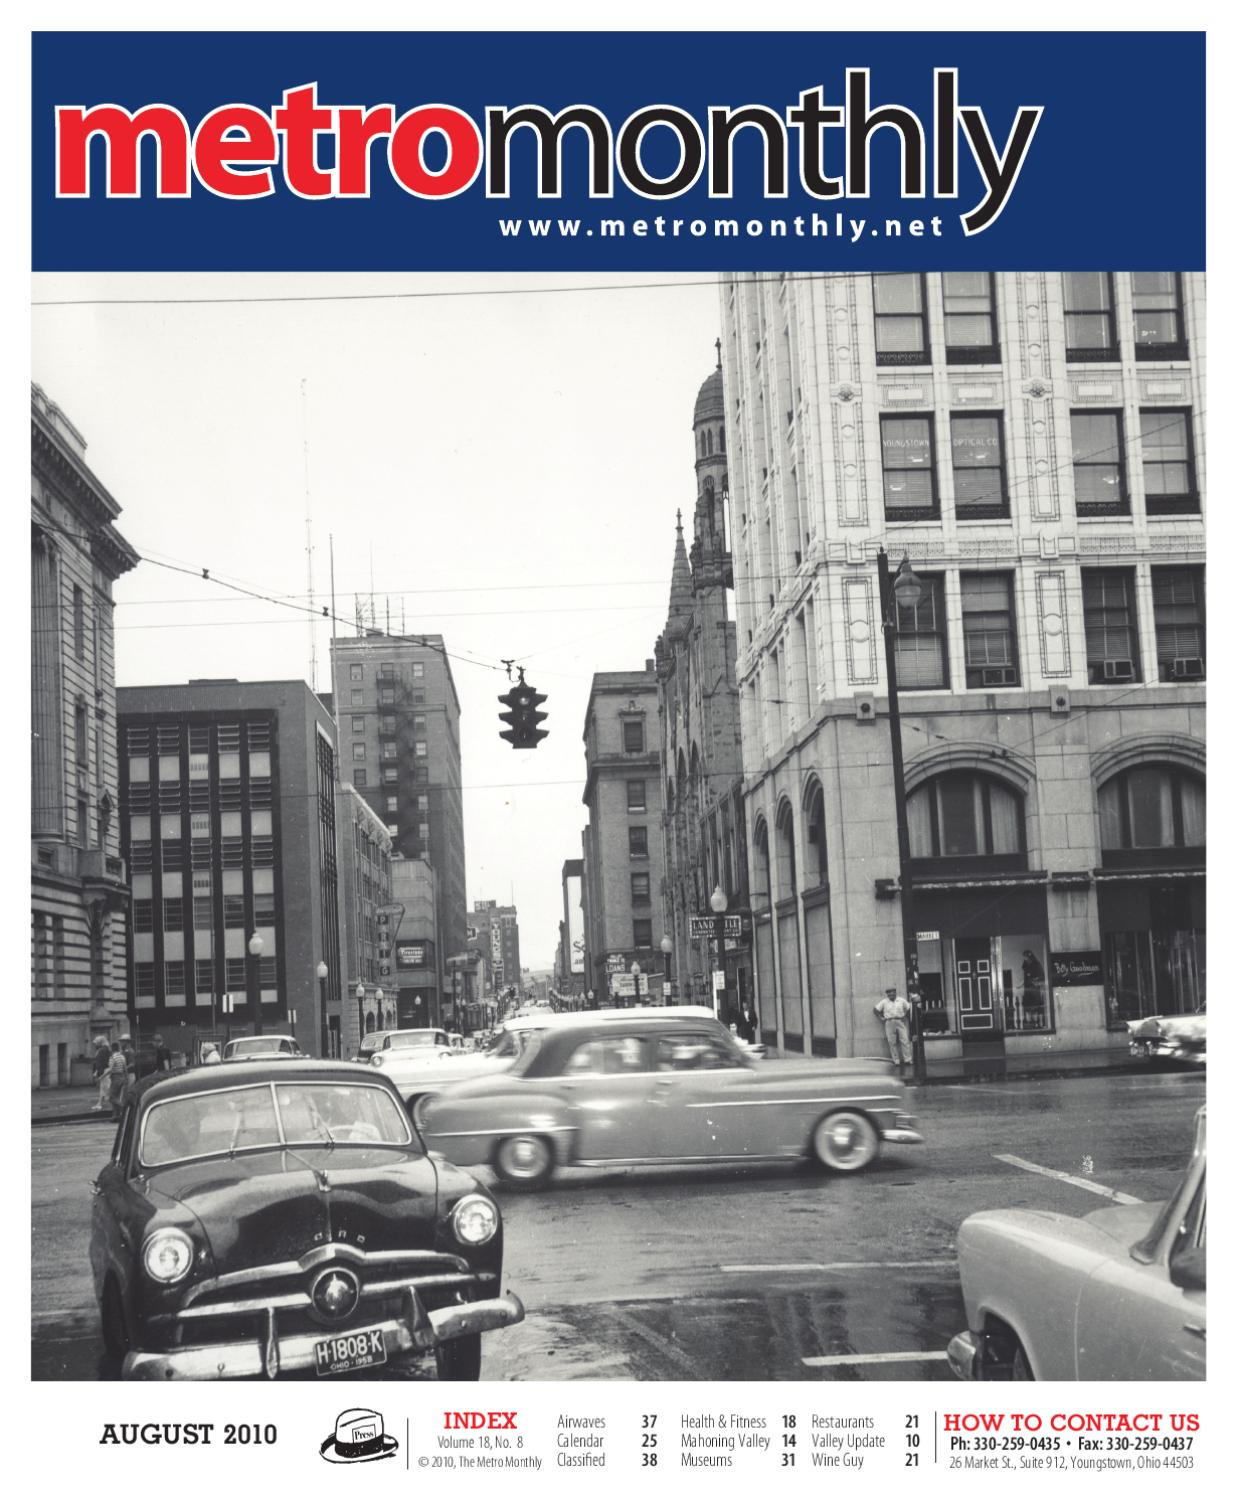 Metro Monthly AUG 2010 by Metro Monthly - issuu